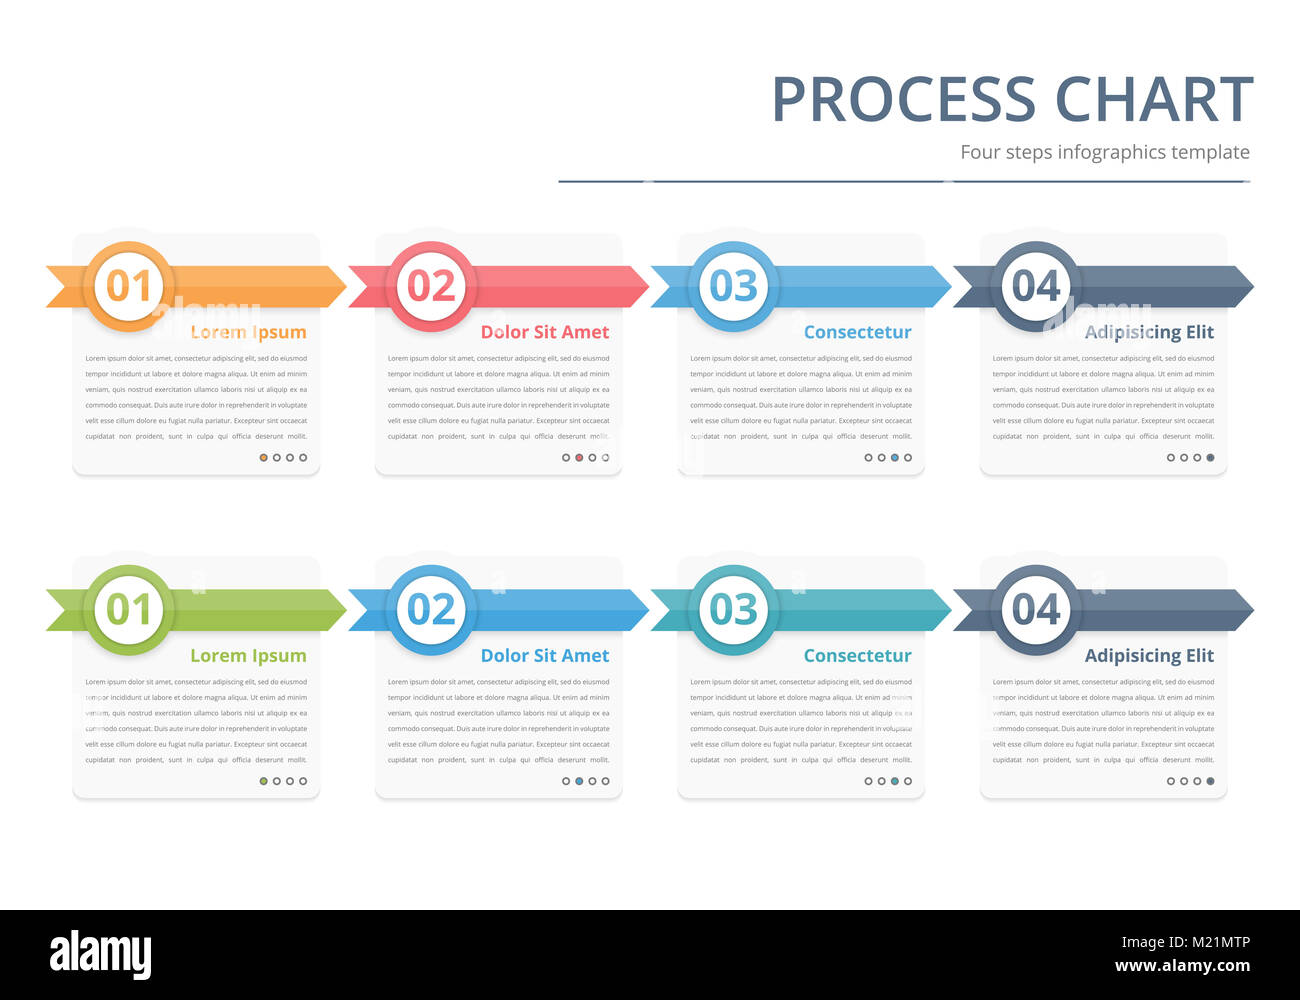 Process chart flow chart template infographics design elements process chart flow chart template infographics design elements with numbers and text business infographics workflow steps options vector eps10 nvjuhfo Choice Image